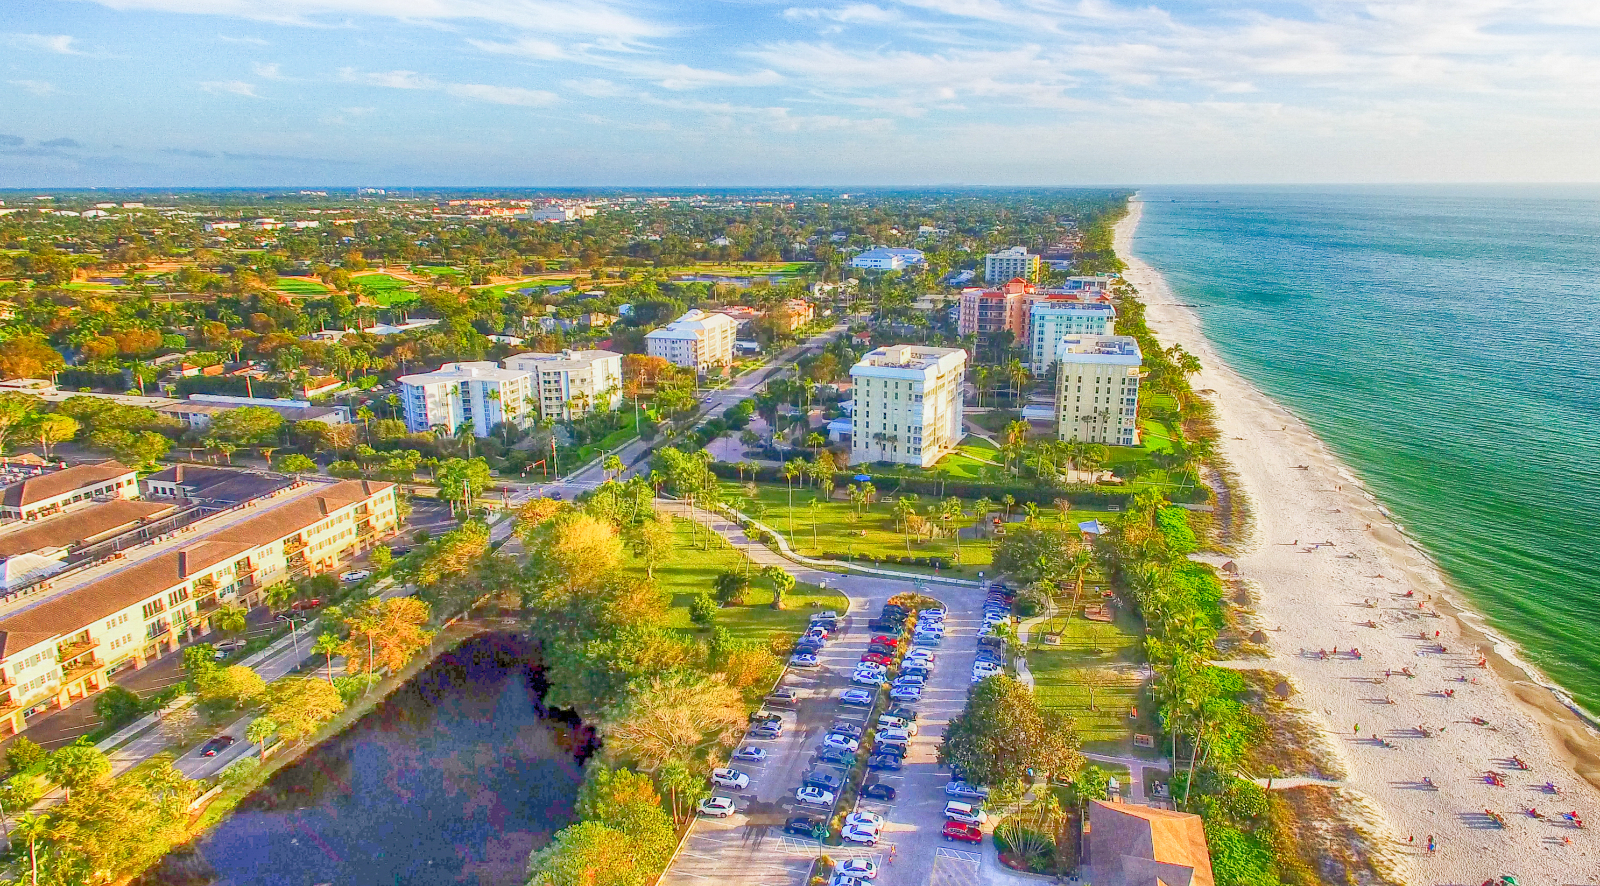 Top Things to do in Naples, Florida